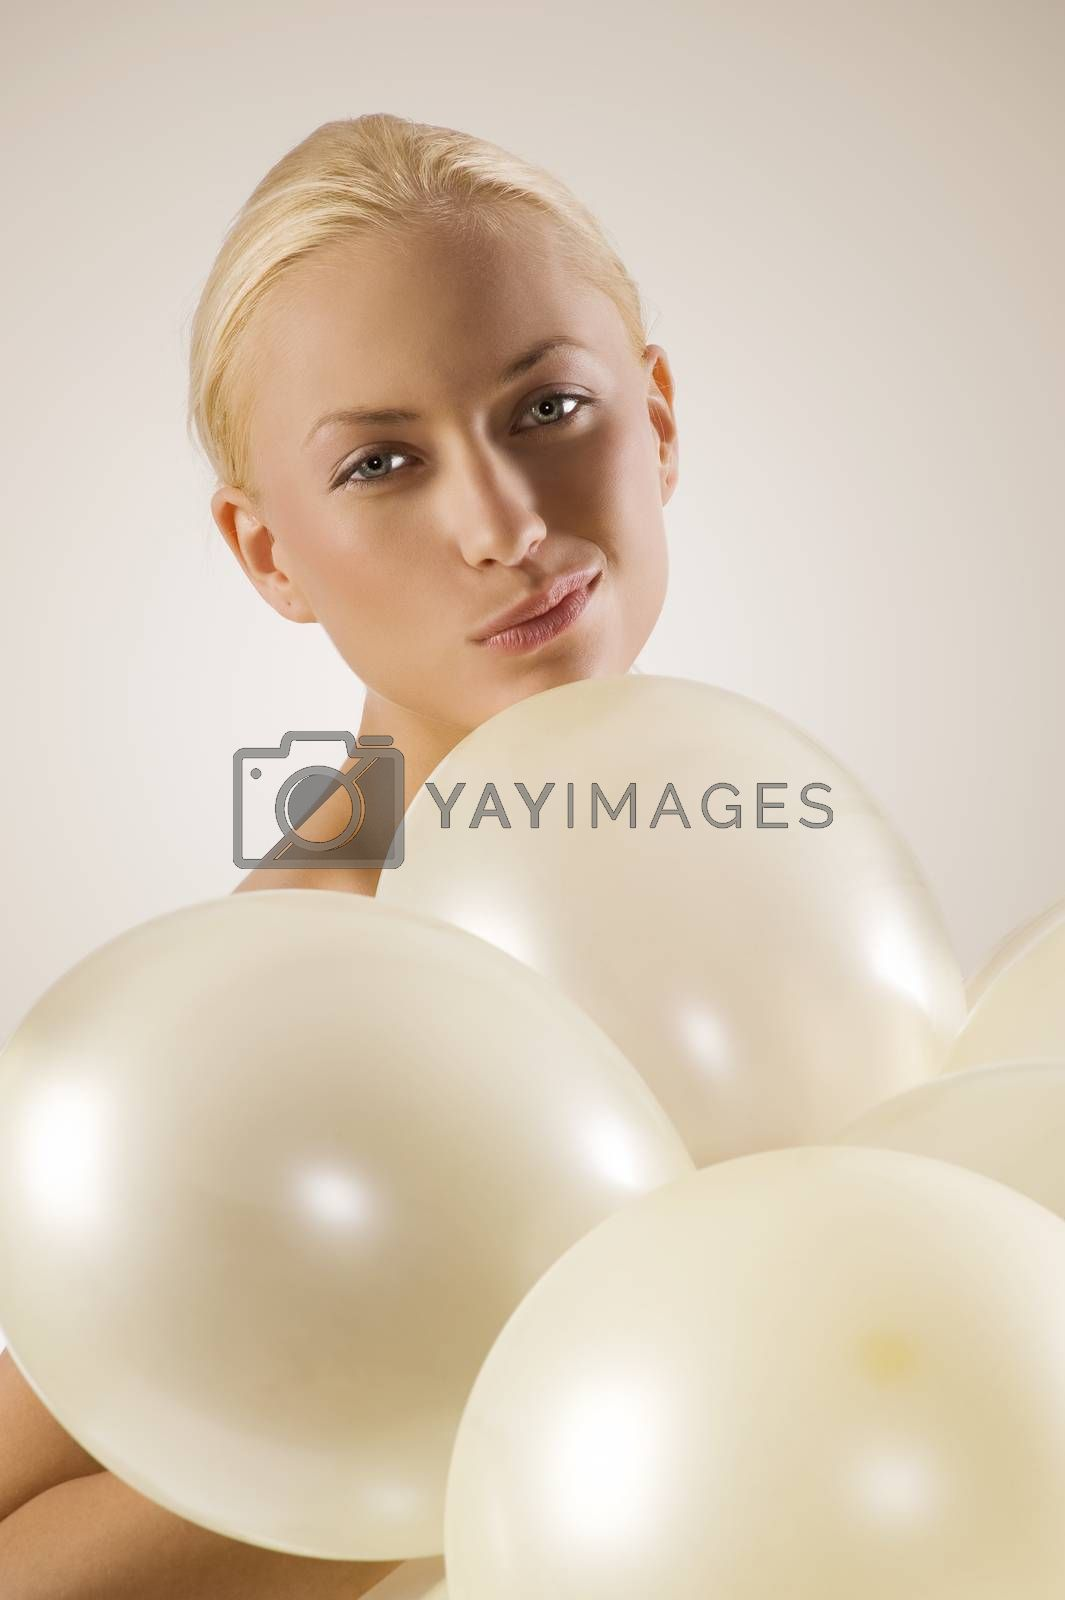 Royalty free image of girl with ballons making face by fotoCD